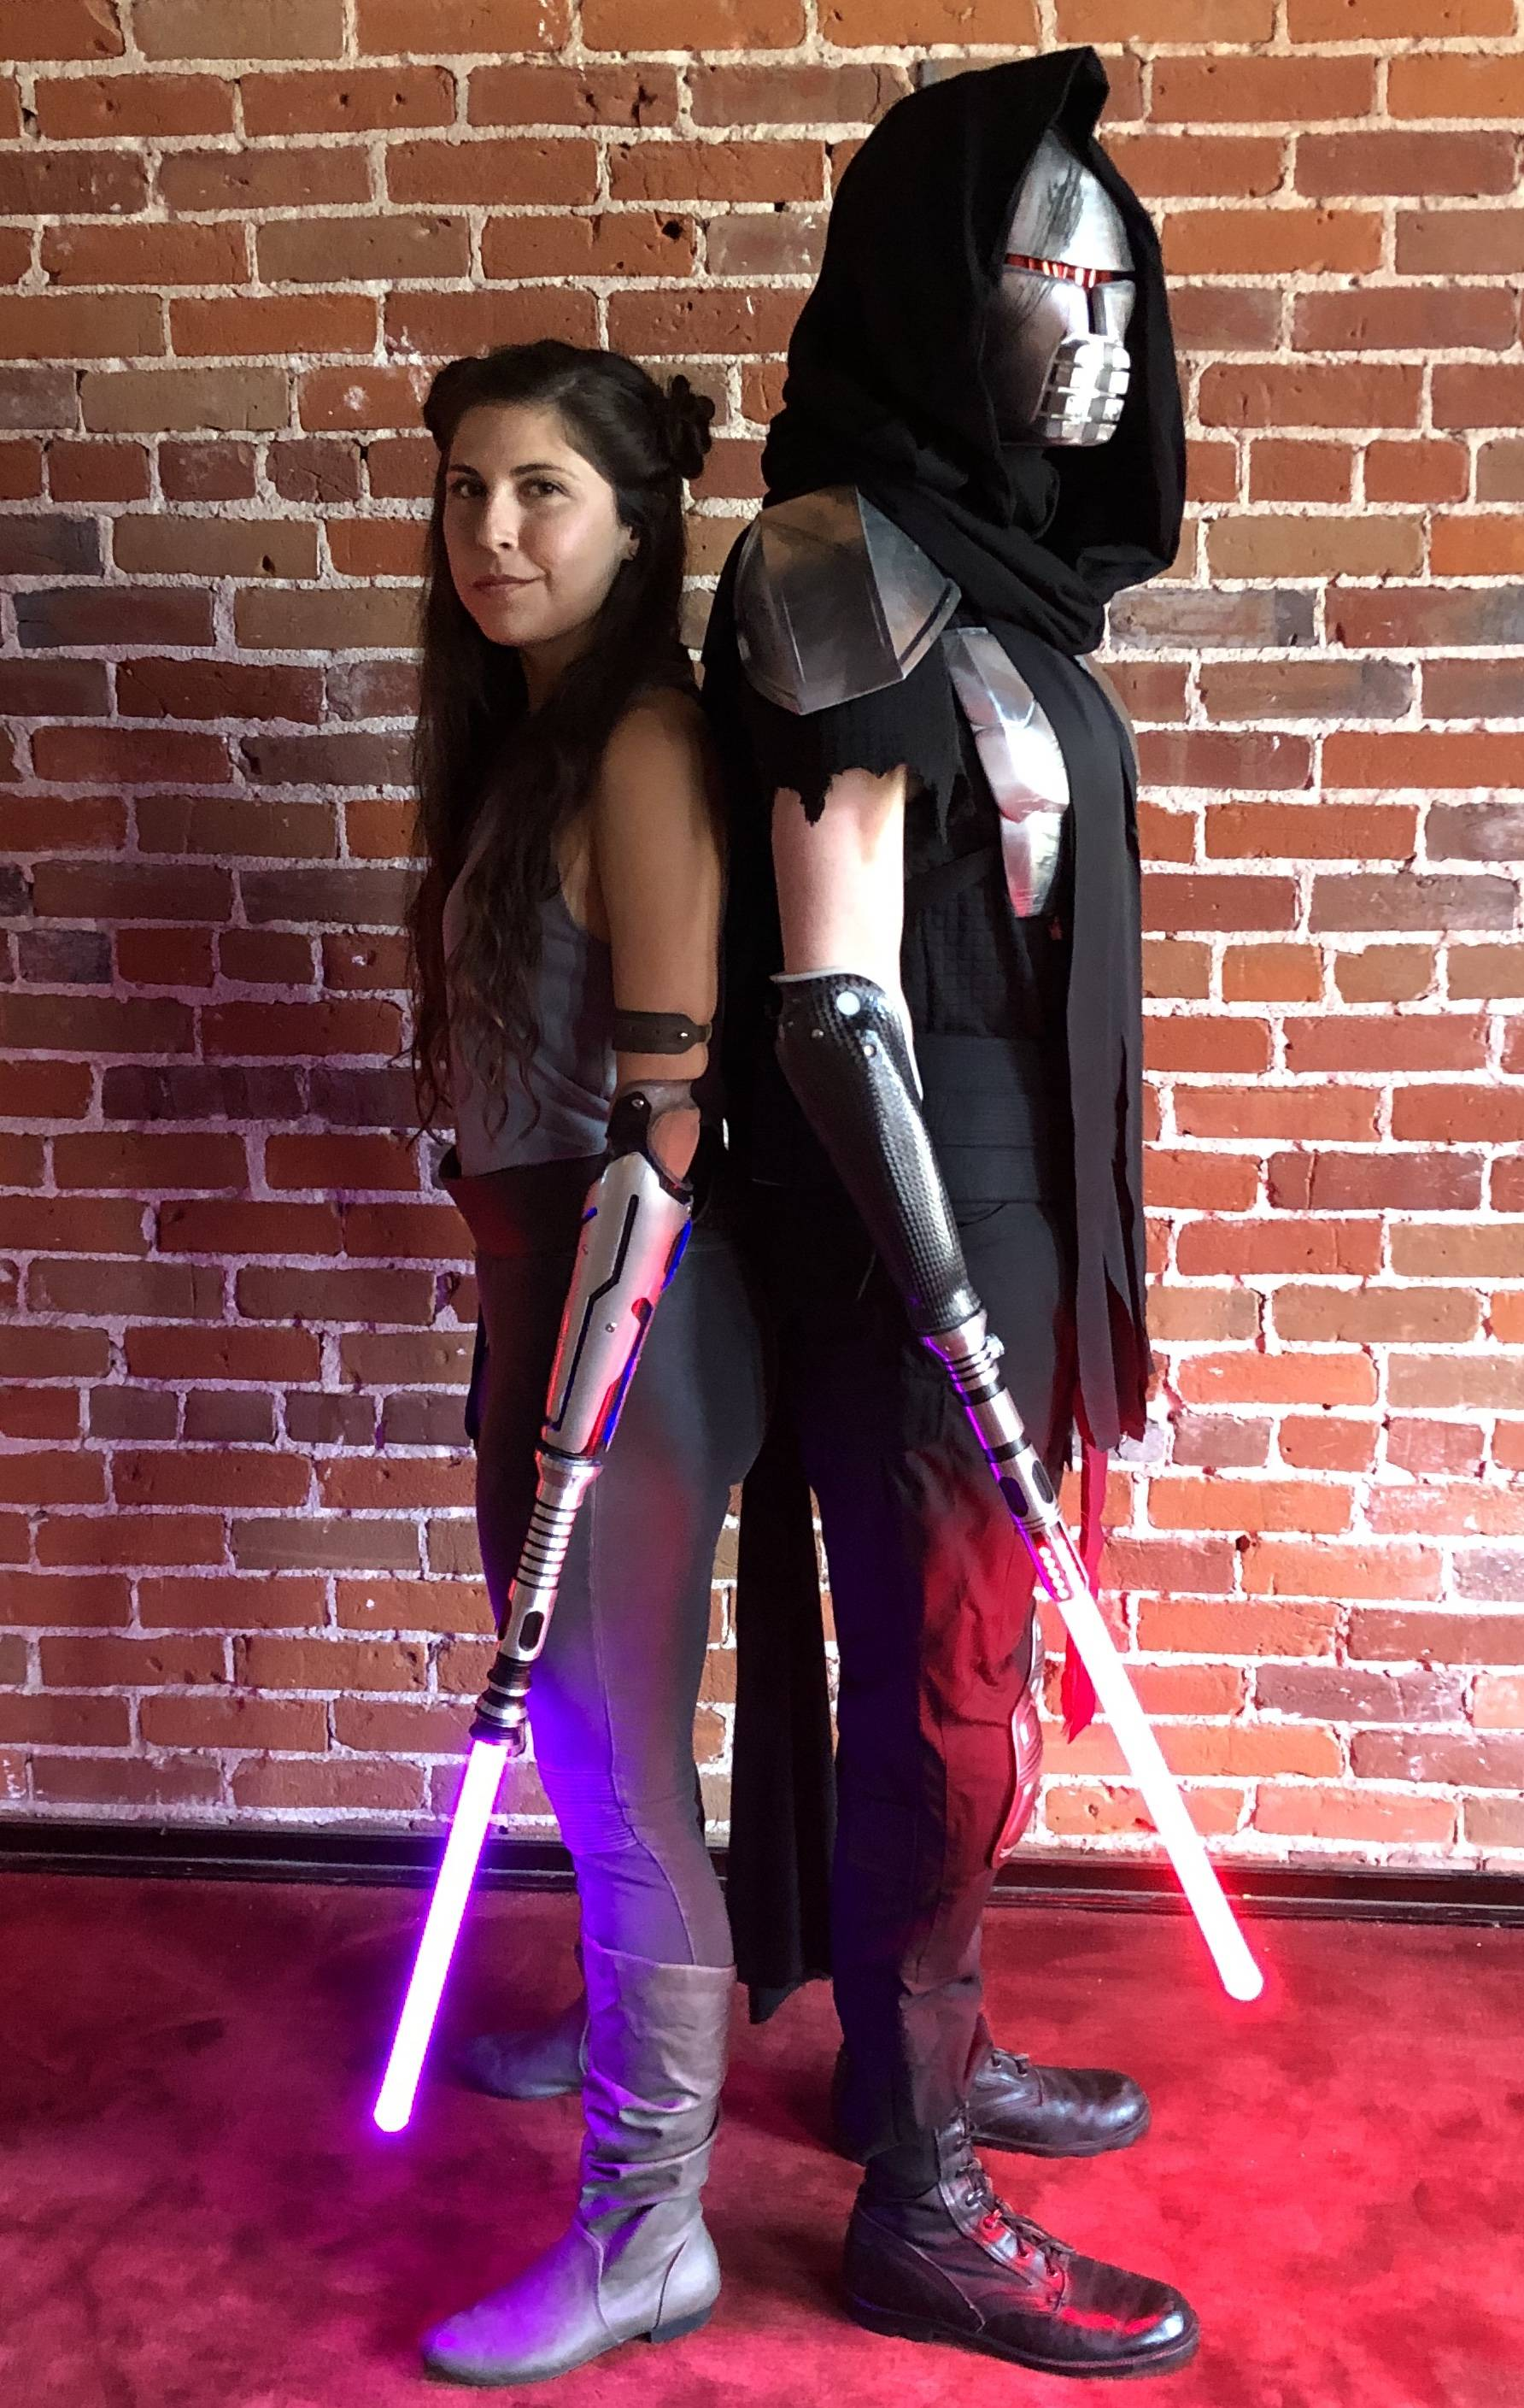 Cosplaying with our bionic arm lightsaber attachments